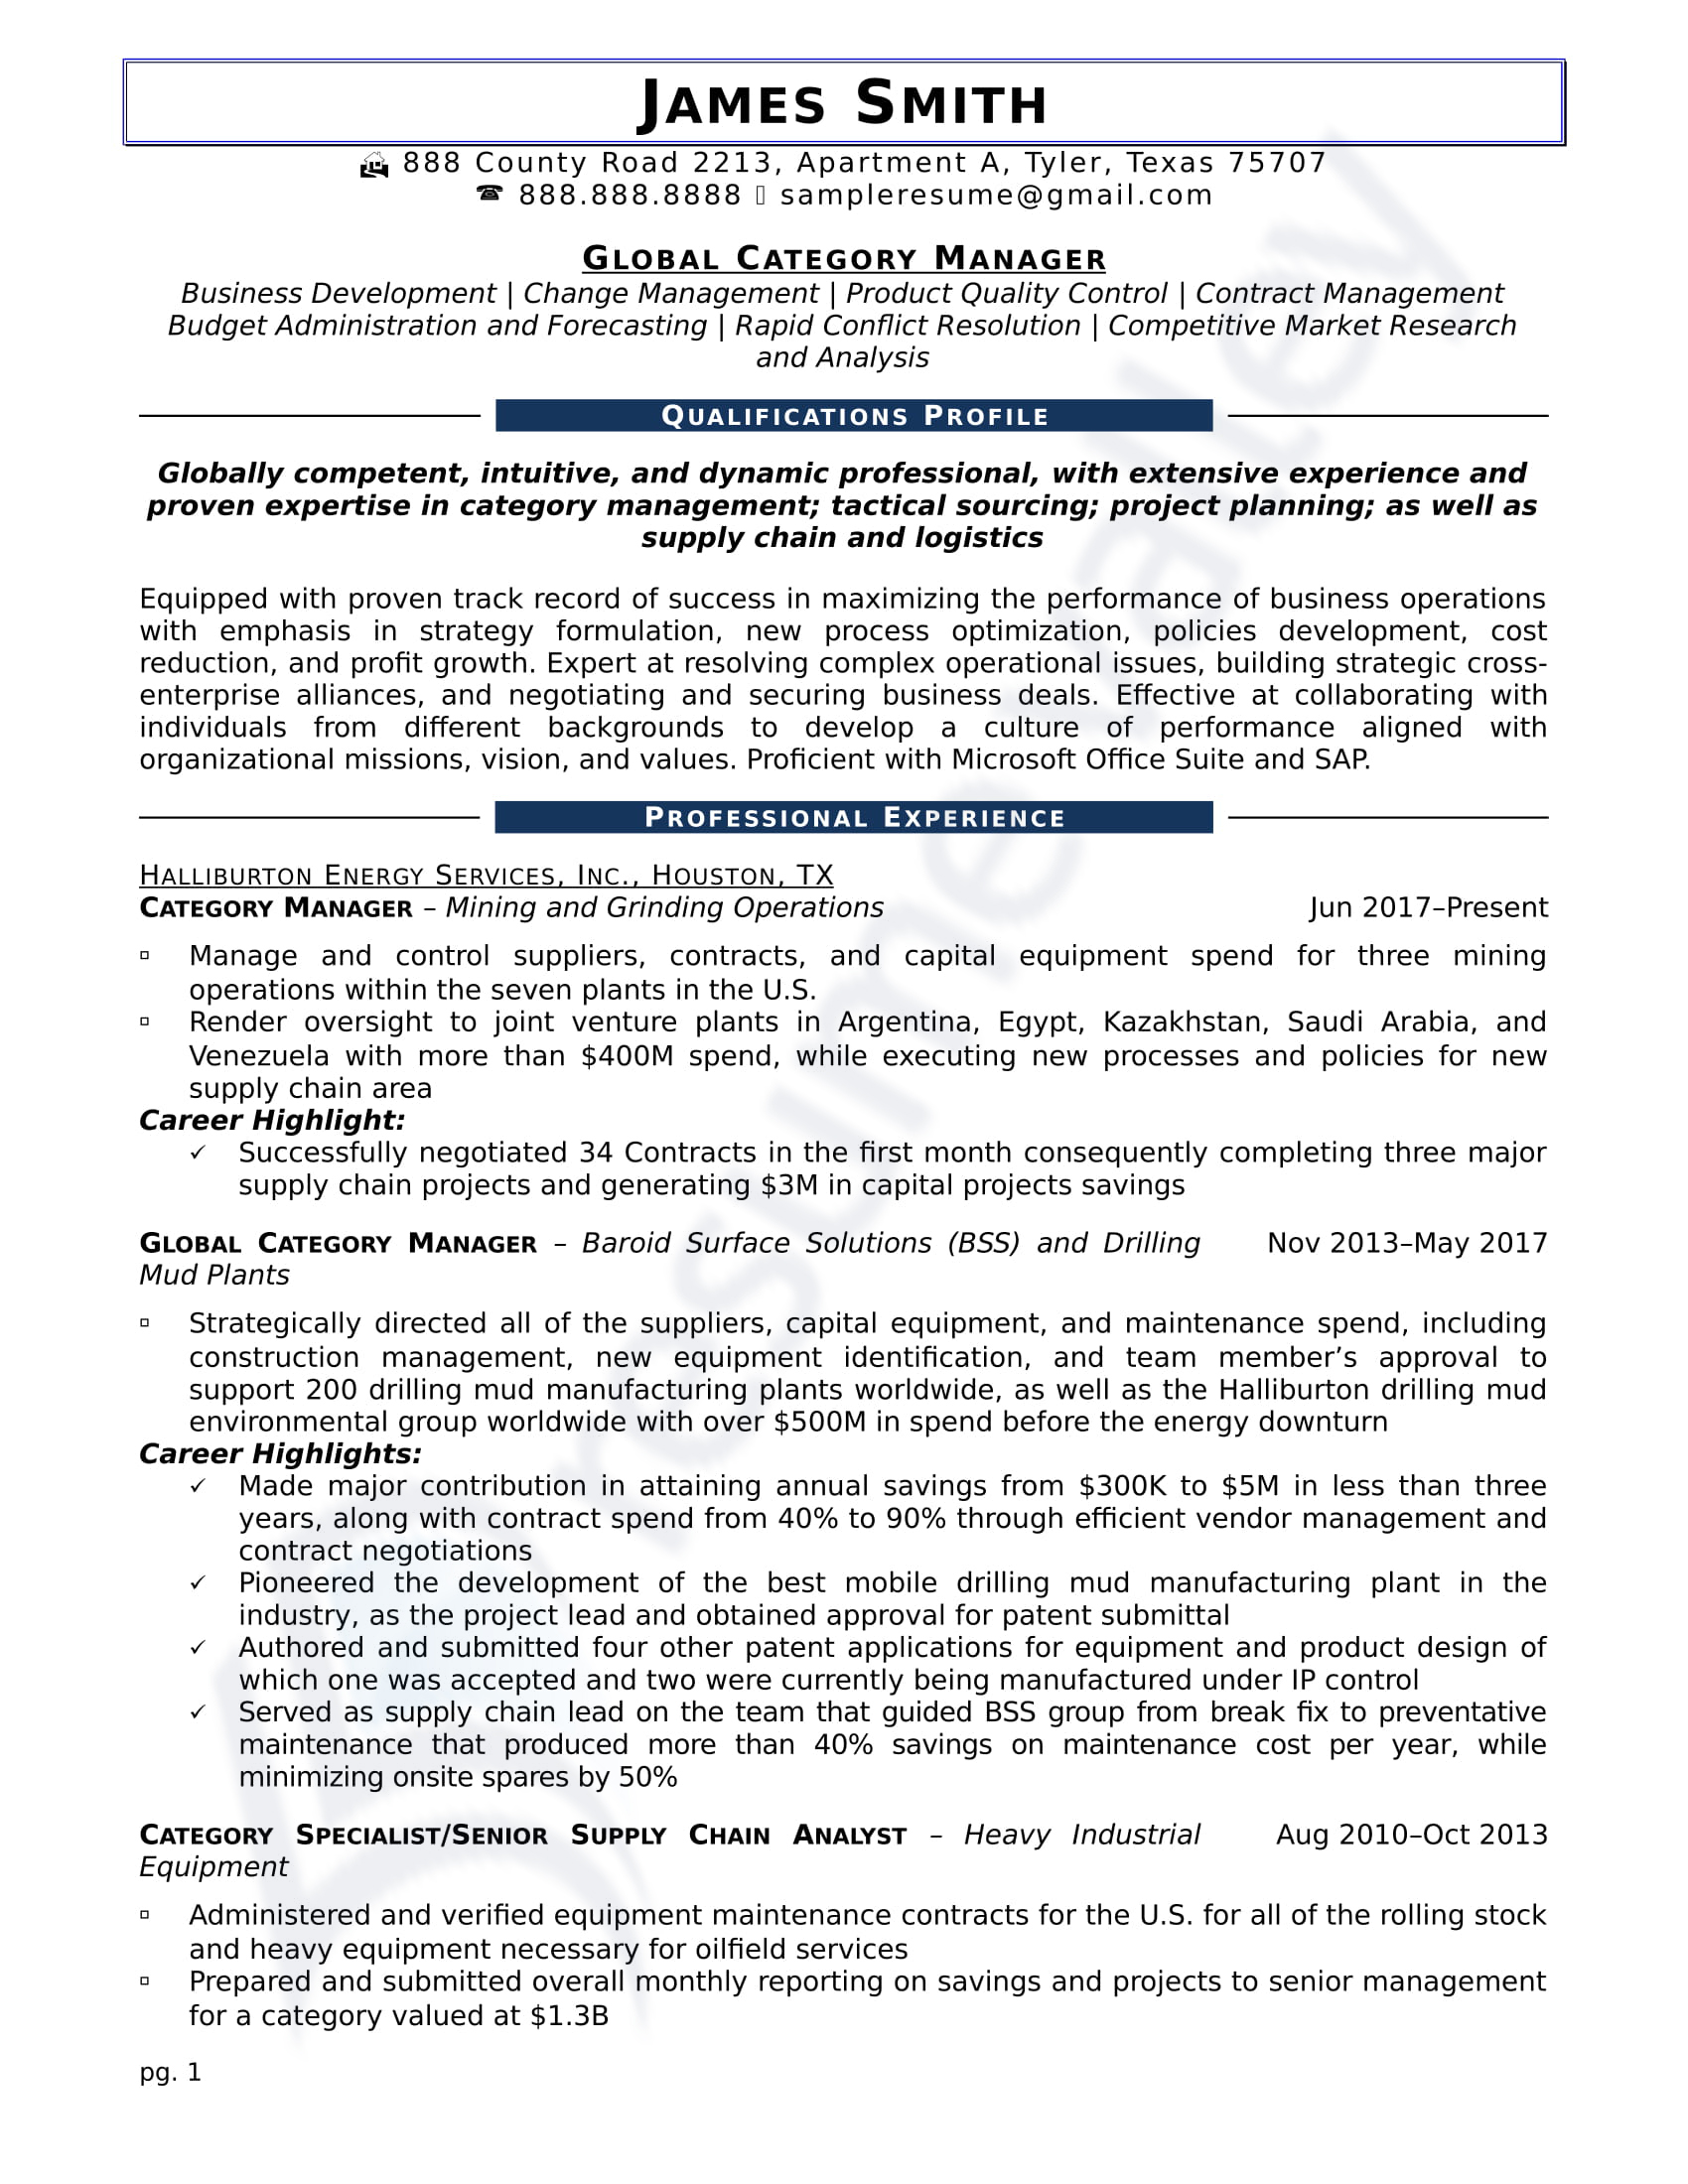 Global Category Manager_Civilian Resume